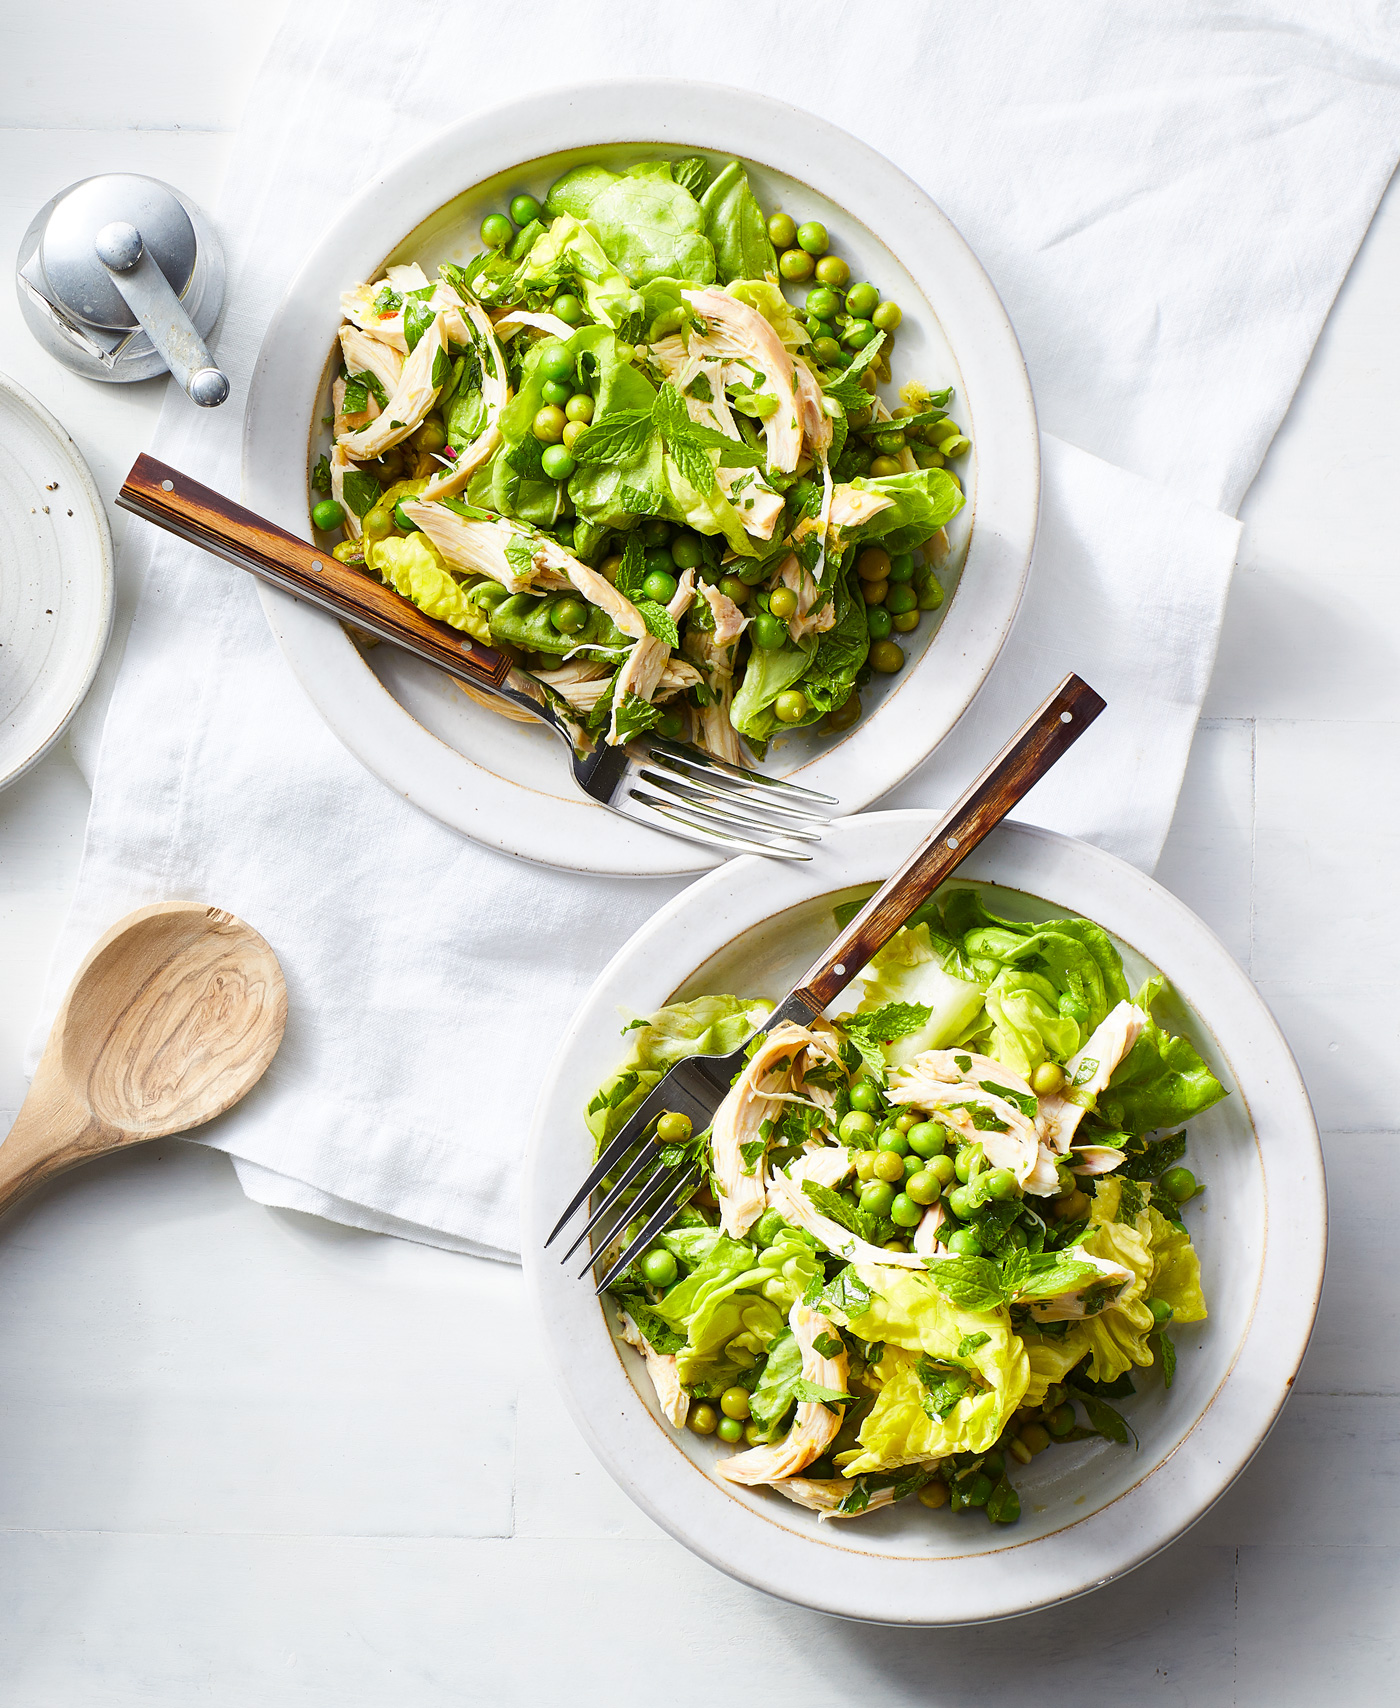 Green Salad with Chicken and Marinated Peas